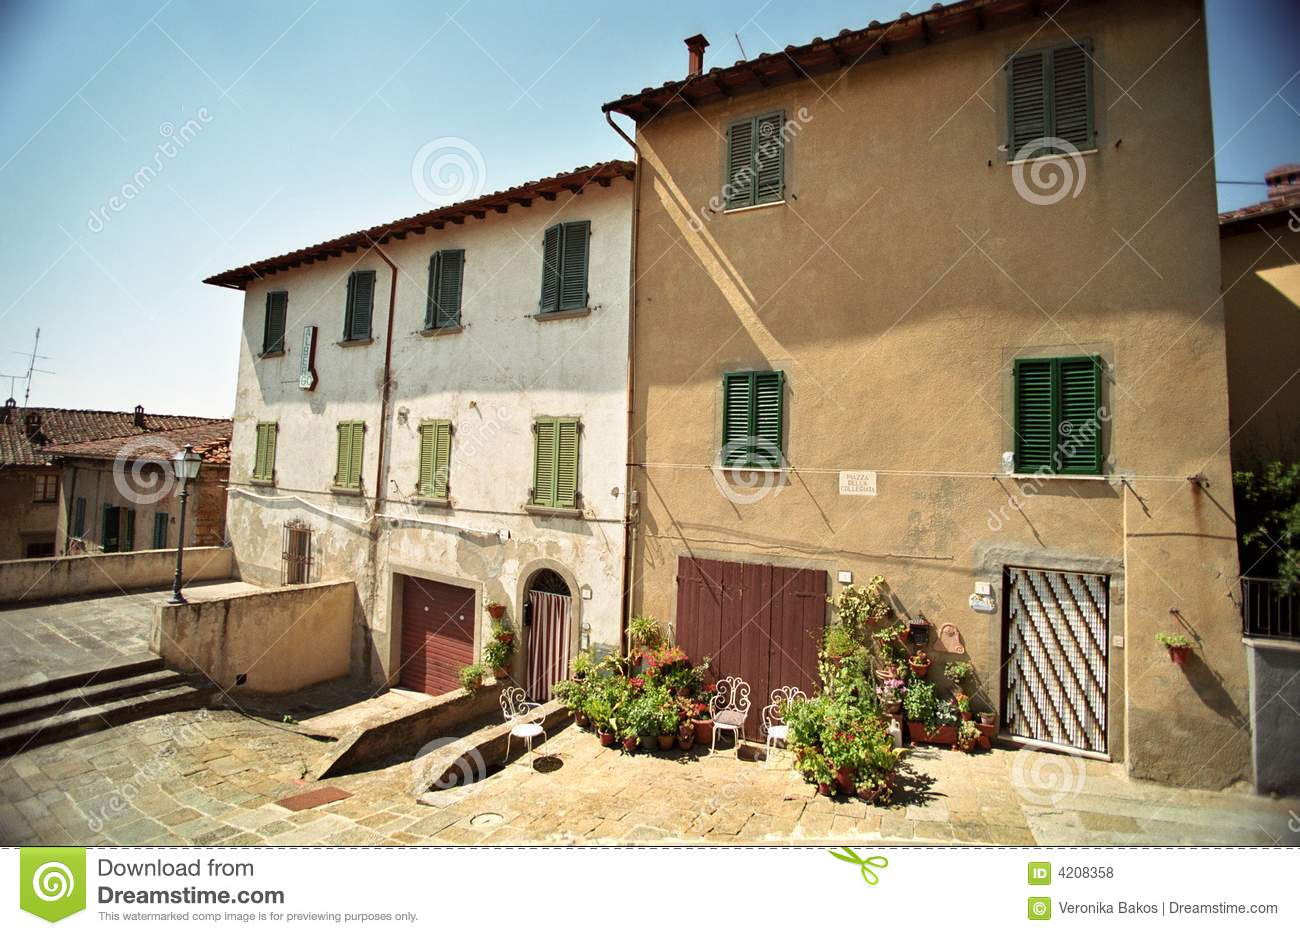 Two houses in italy royalty free stock photos image 4208358 for 1 homes in italy